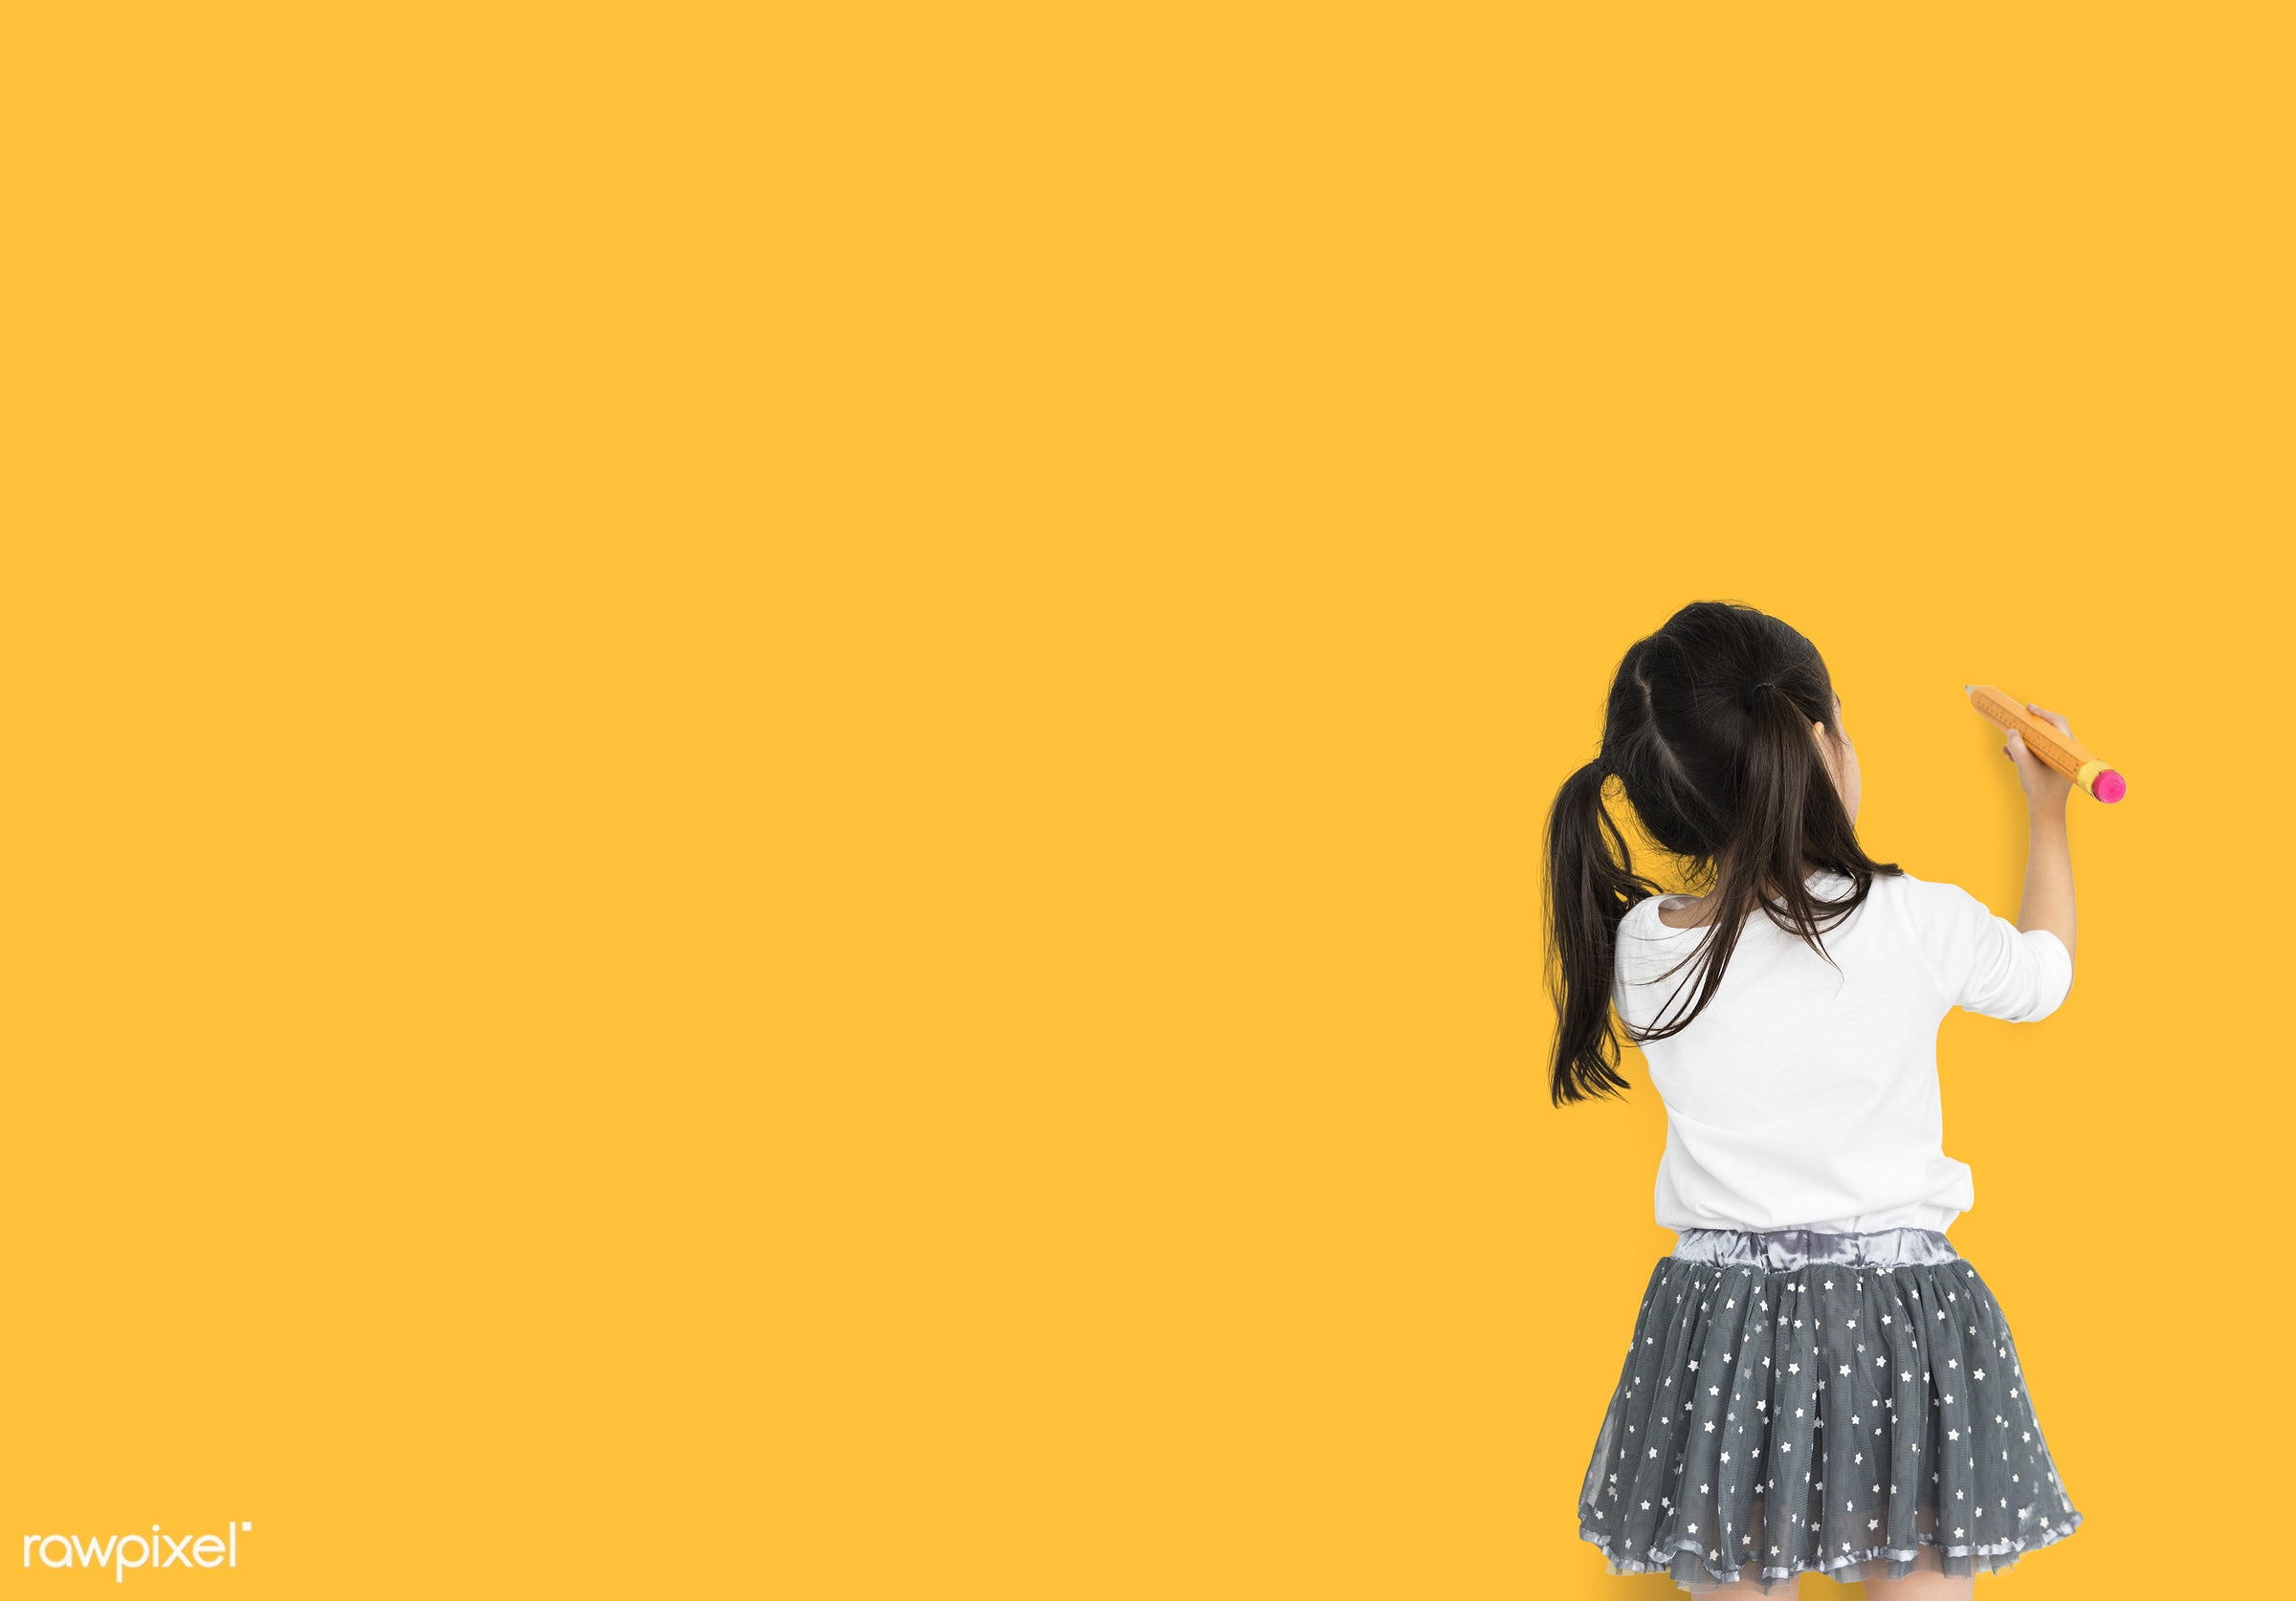 alone, asian, background, child, drawing, expression, focused, girl, isolated, kid, one, pencil, studio, young, youth